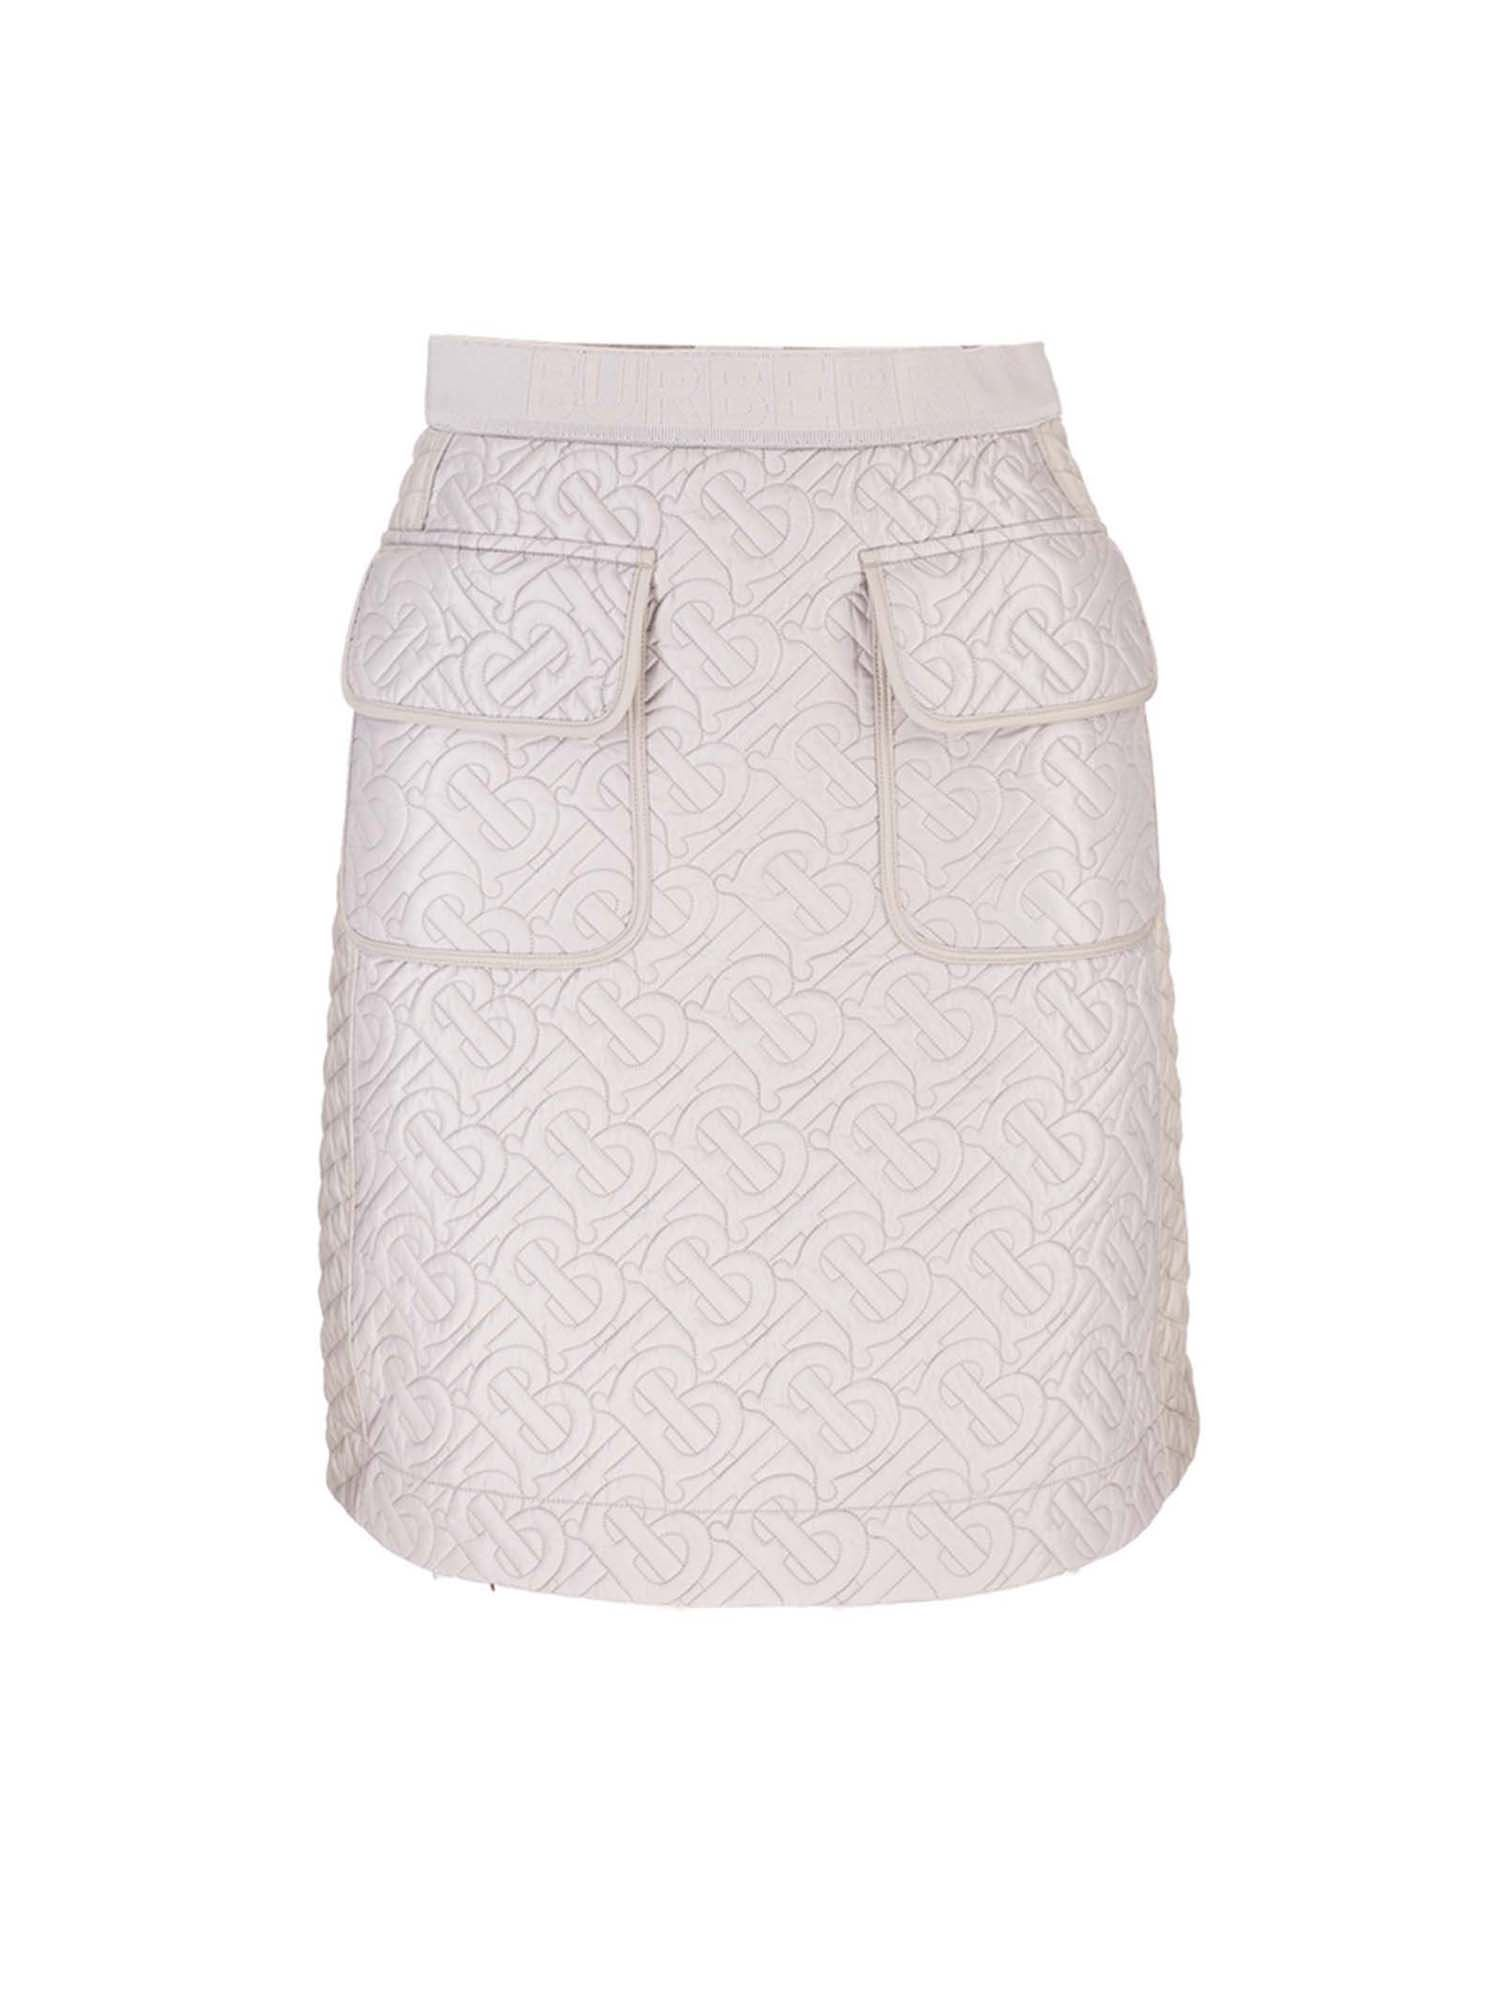 Burberry QUILTED LOGO SKIRT IN GREY